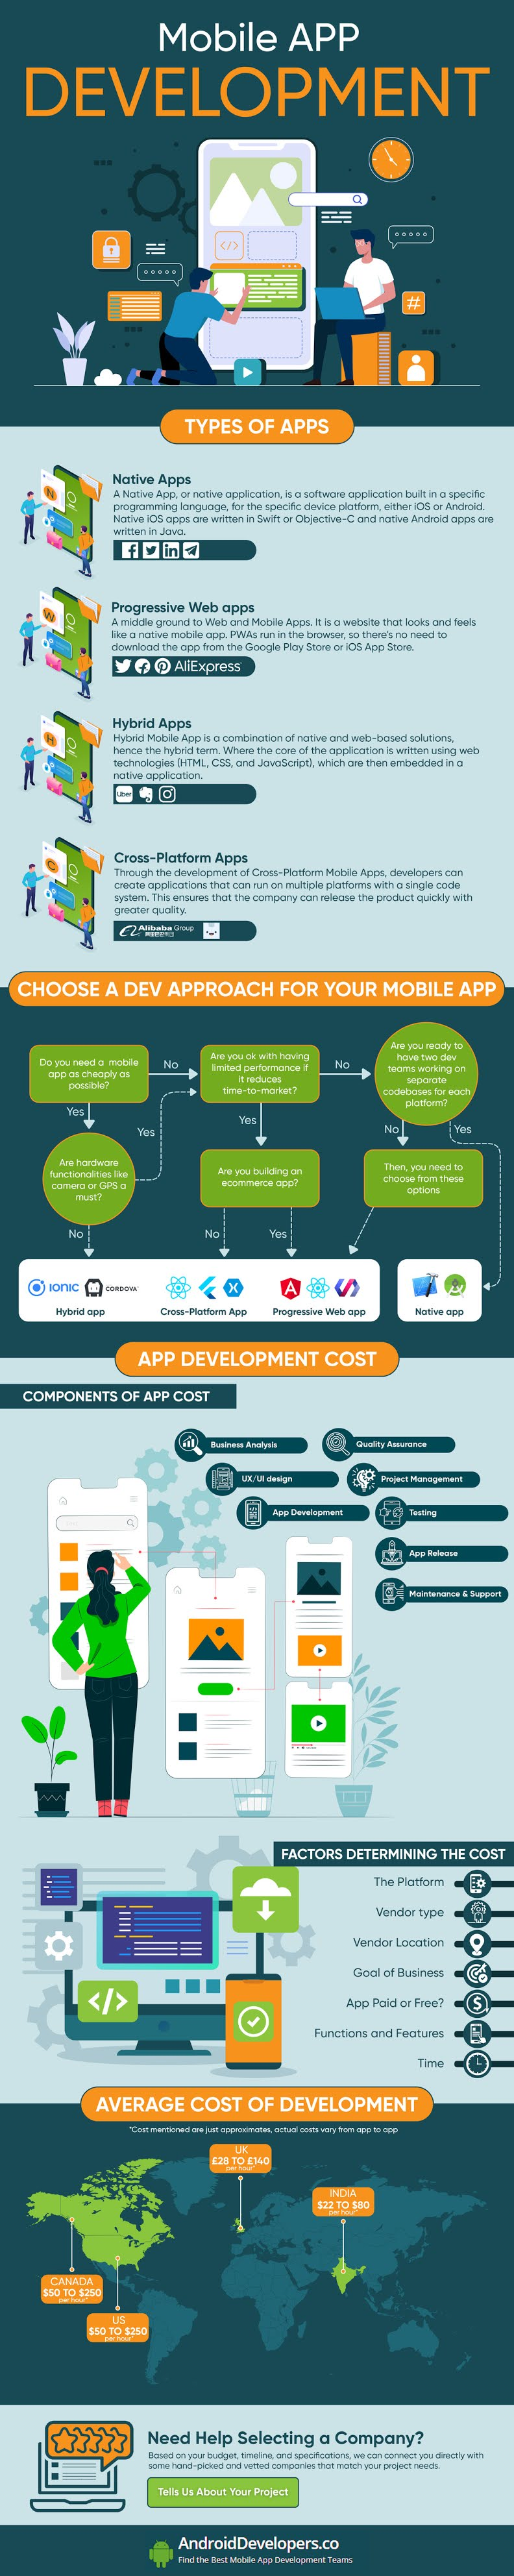 Mobile APP Development #infographic #Technology #infographics #Apps #Mobile APP #APP Development